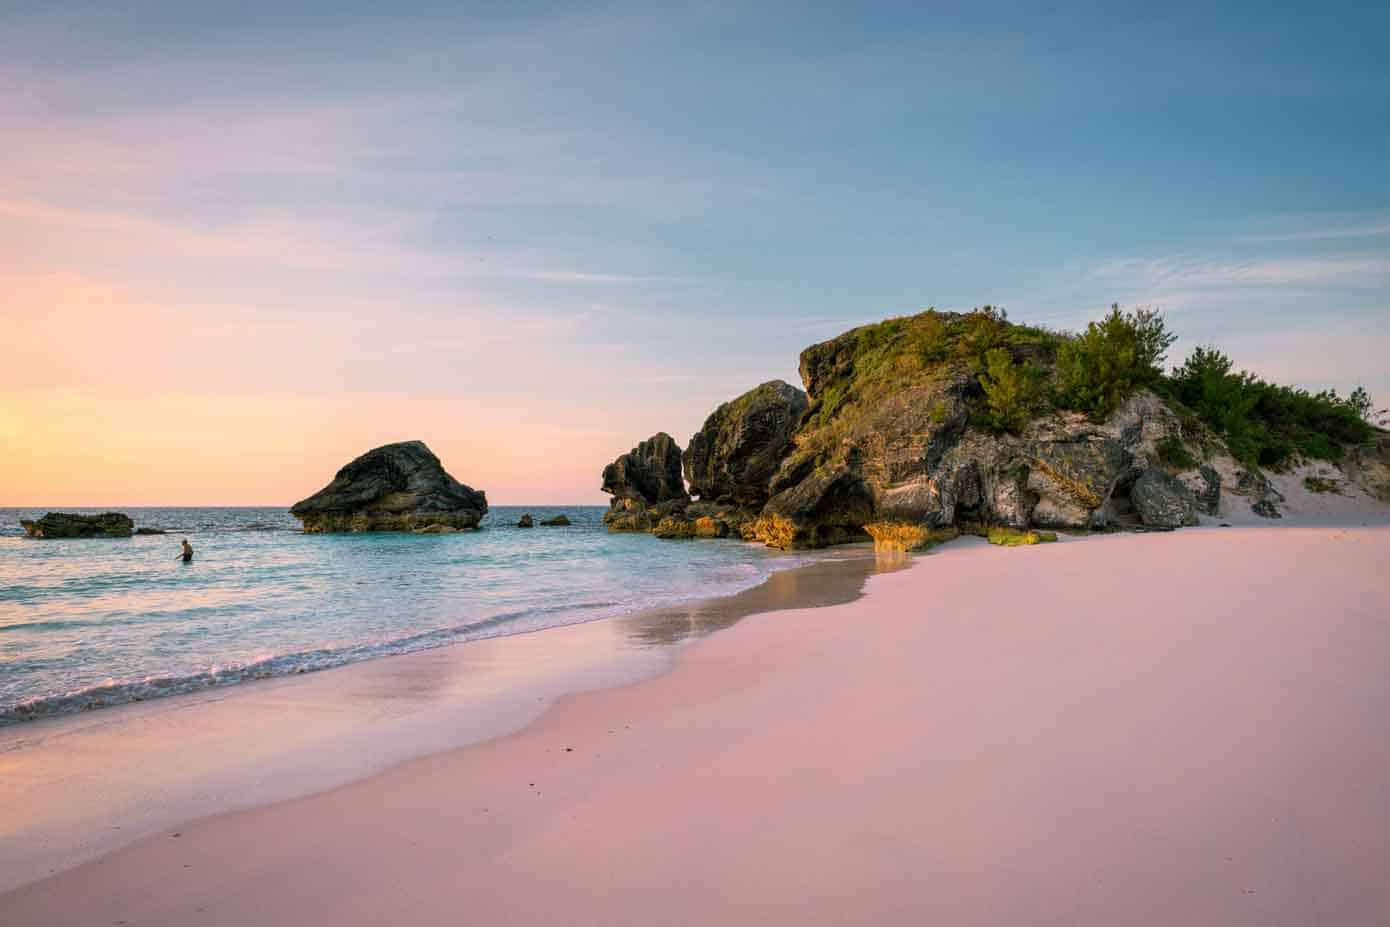 Pink sand beach during sunset in Bermuda.